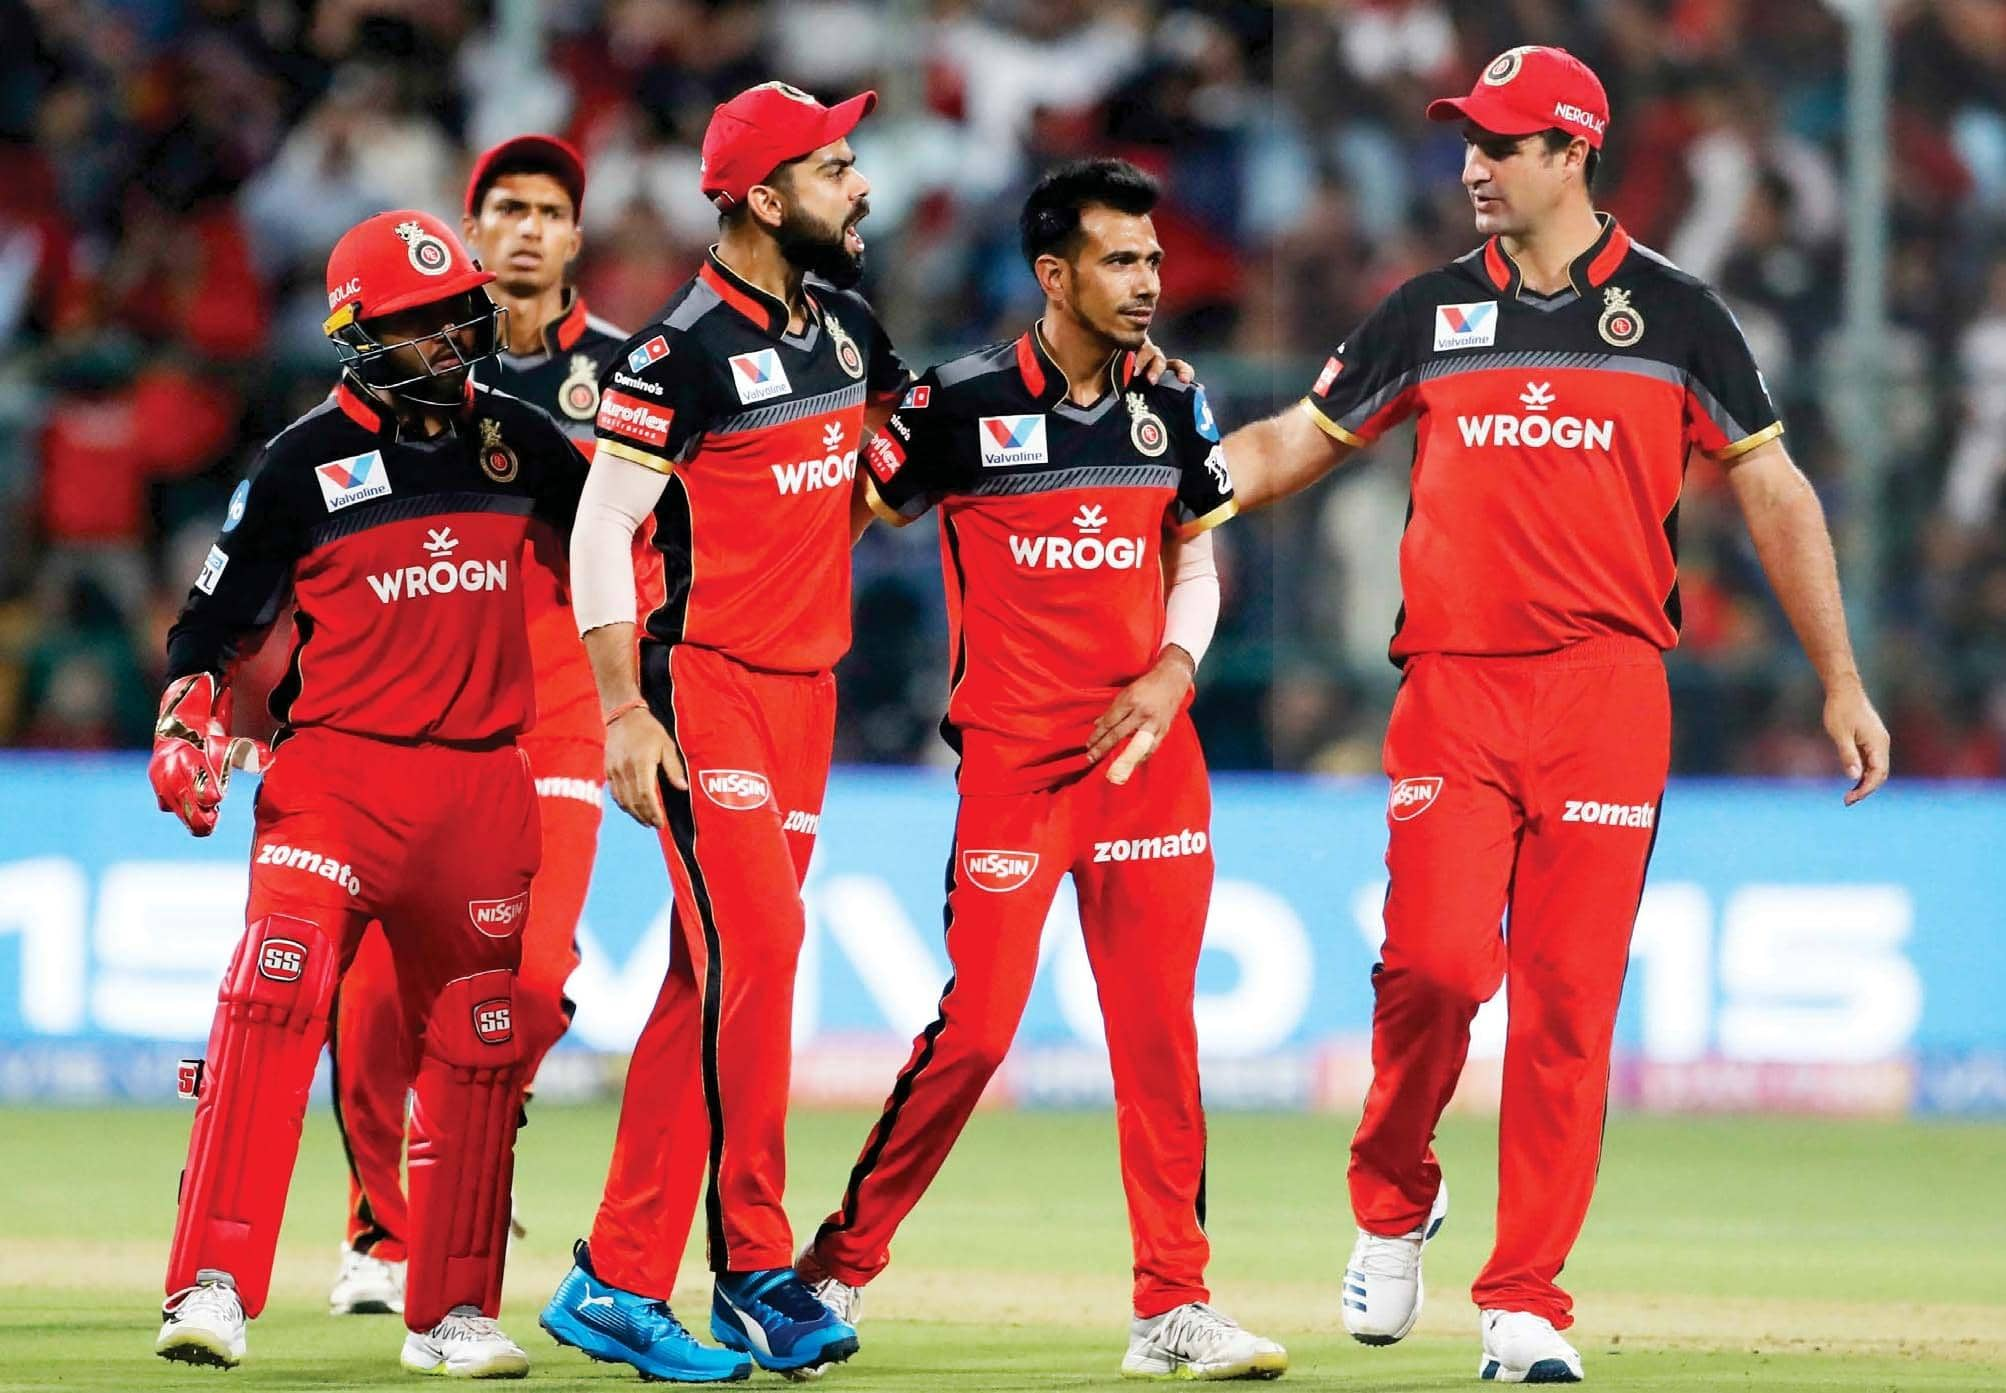 IPL 2020: WILL RCB'S PERENNIAL UNDERACHIEVERS' TAG STAY?